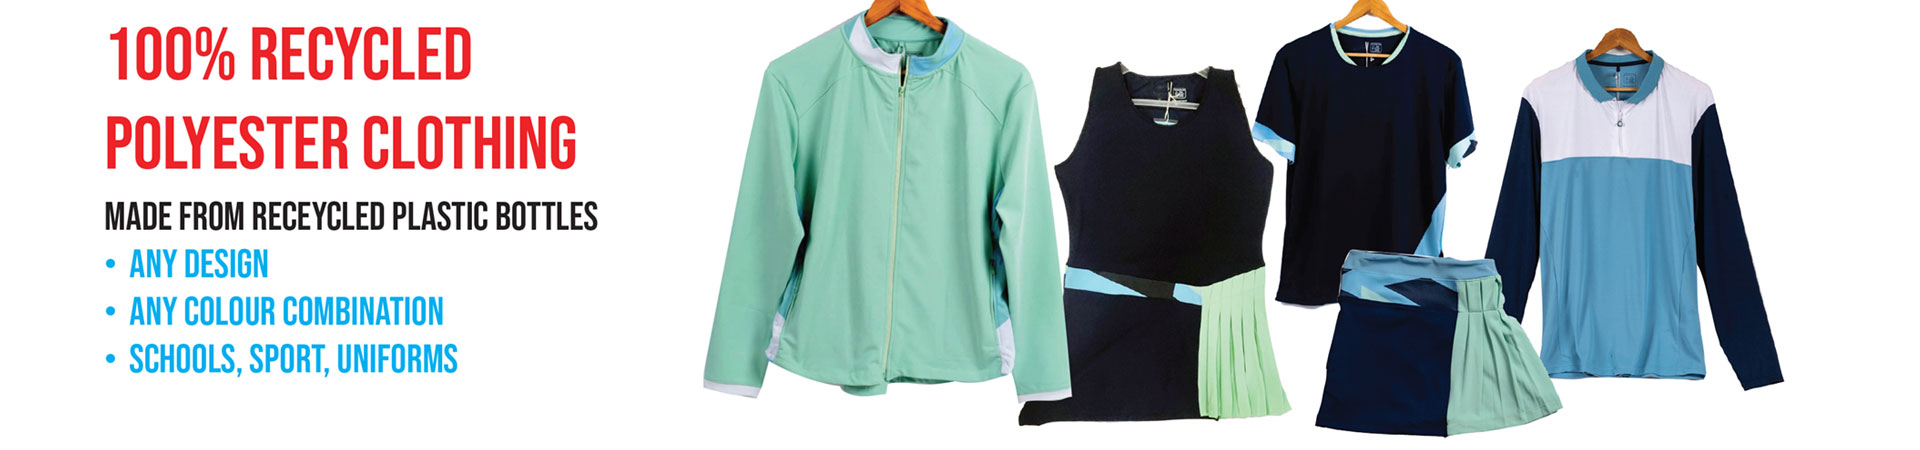 recycled sportswear and uniforms